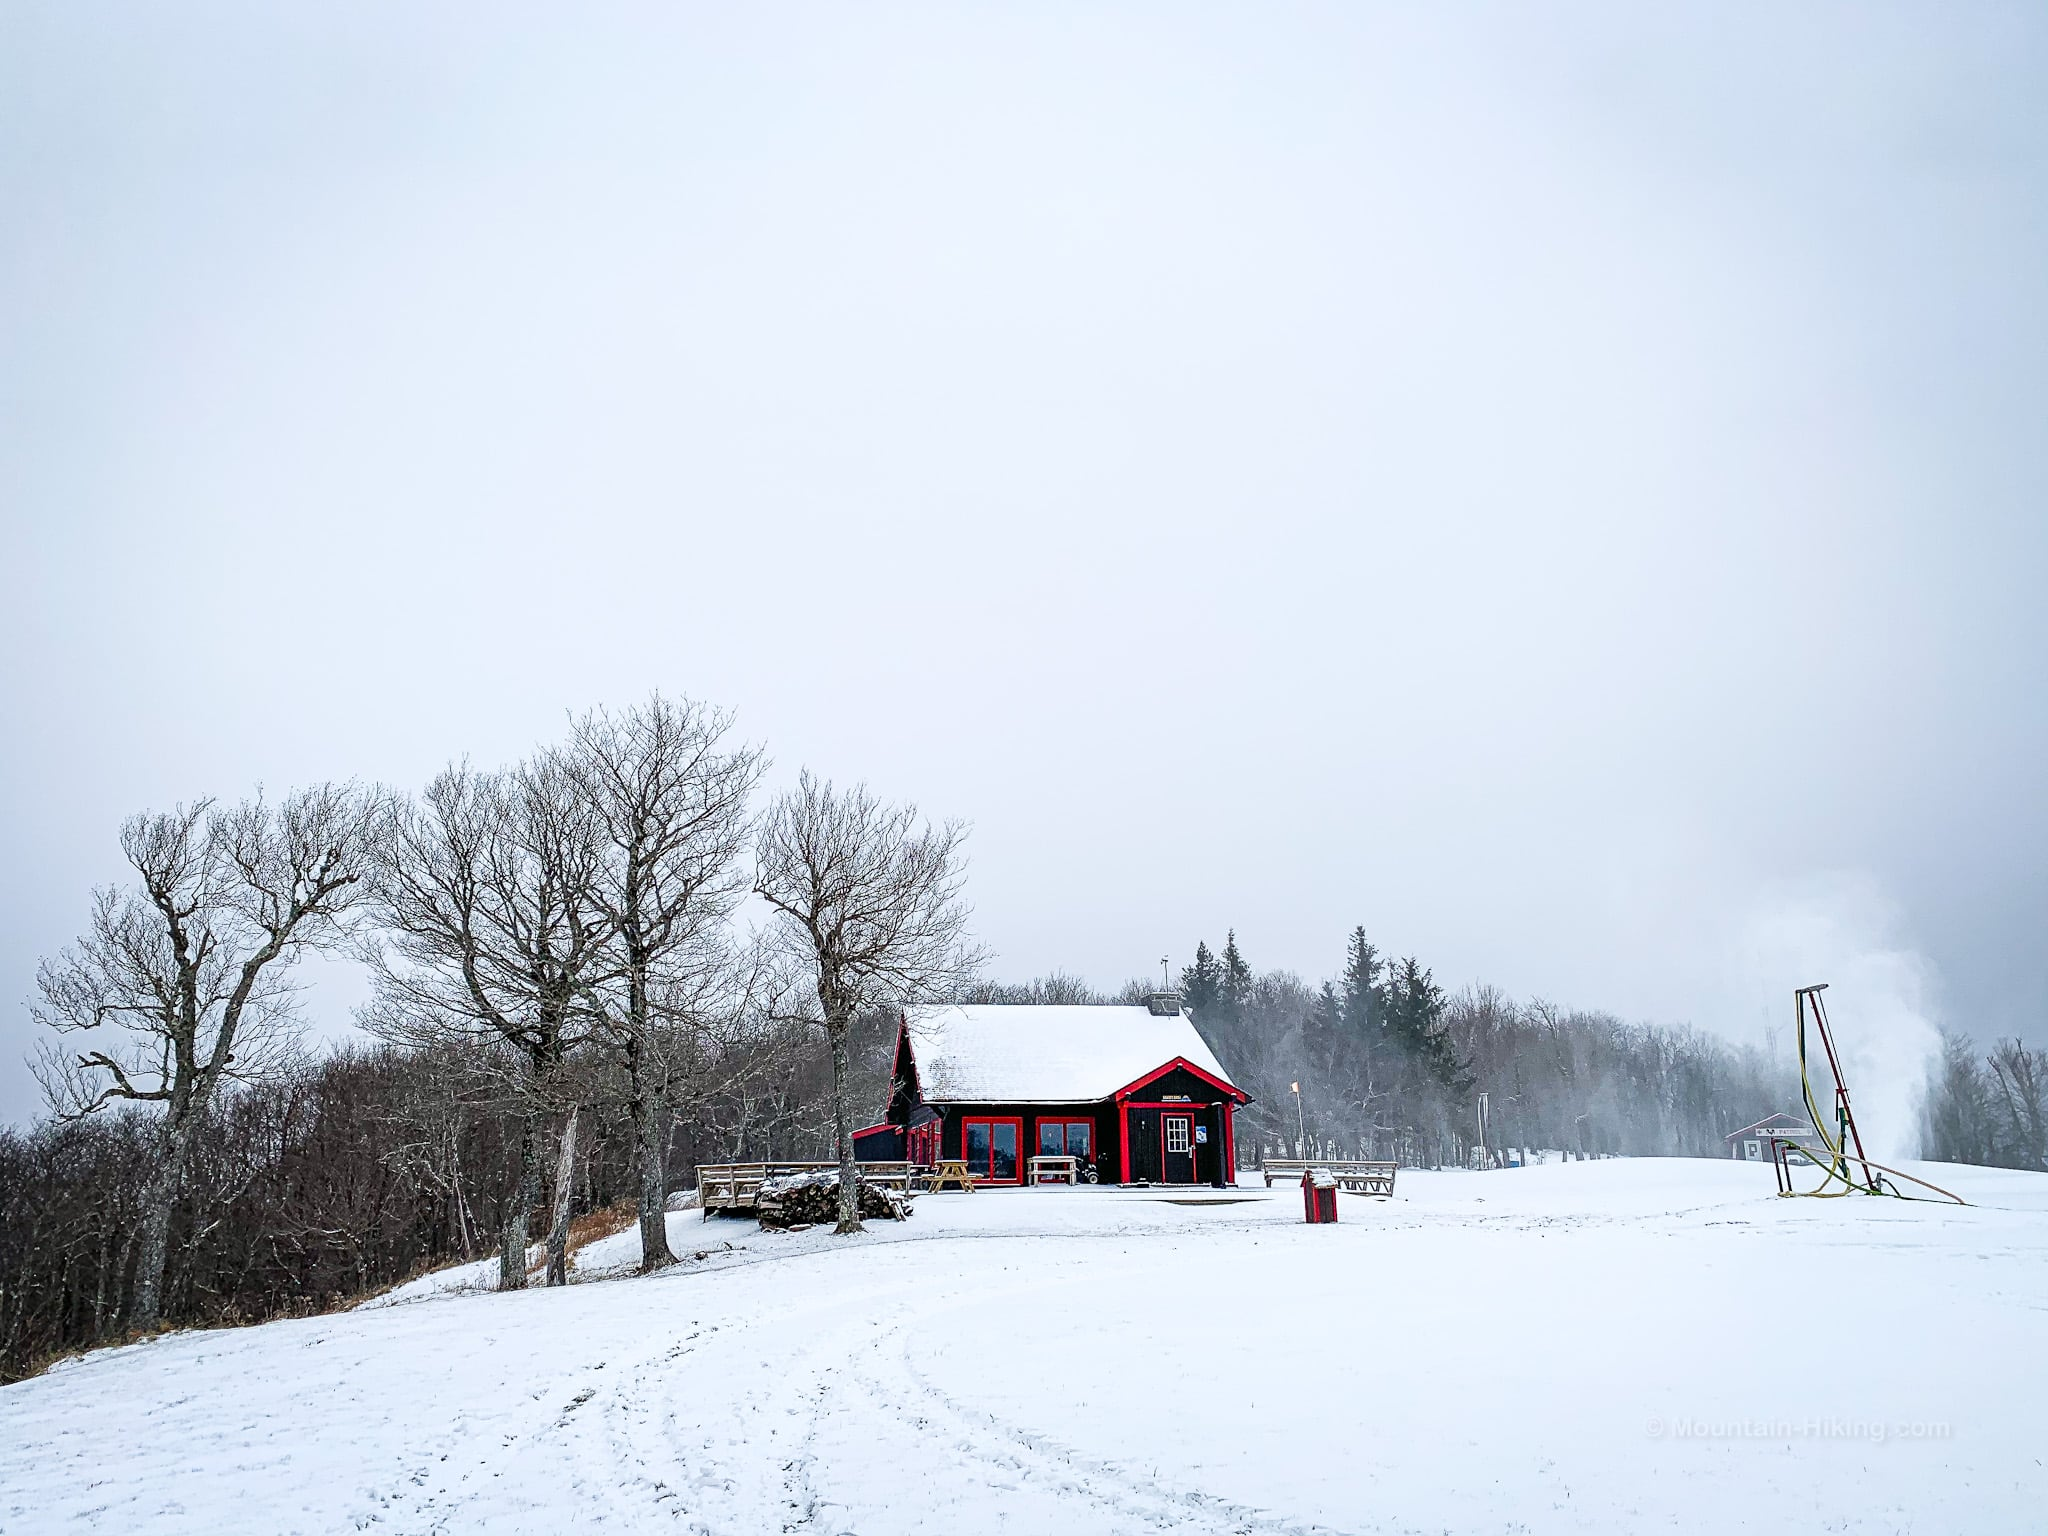 red-trimmed building in snow